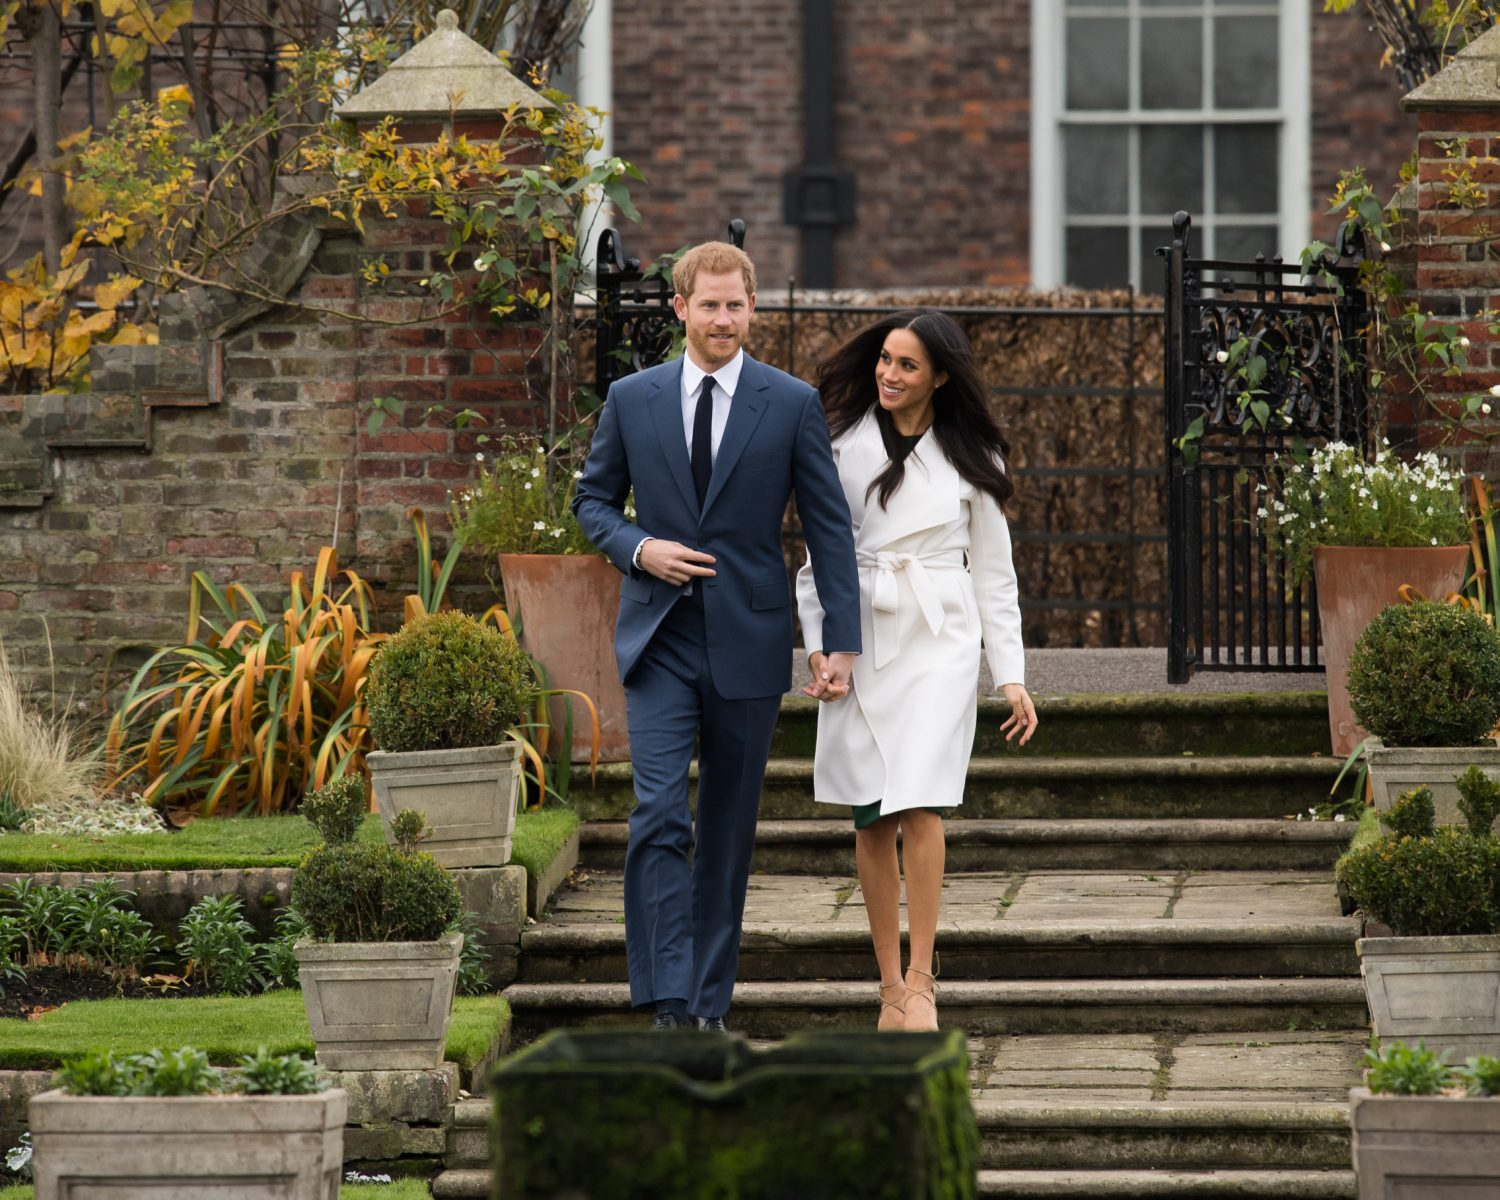 Meghan Markle And Prince Harry Will Spend Christmas With The Queen